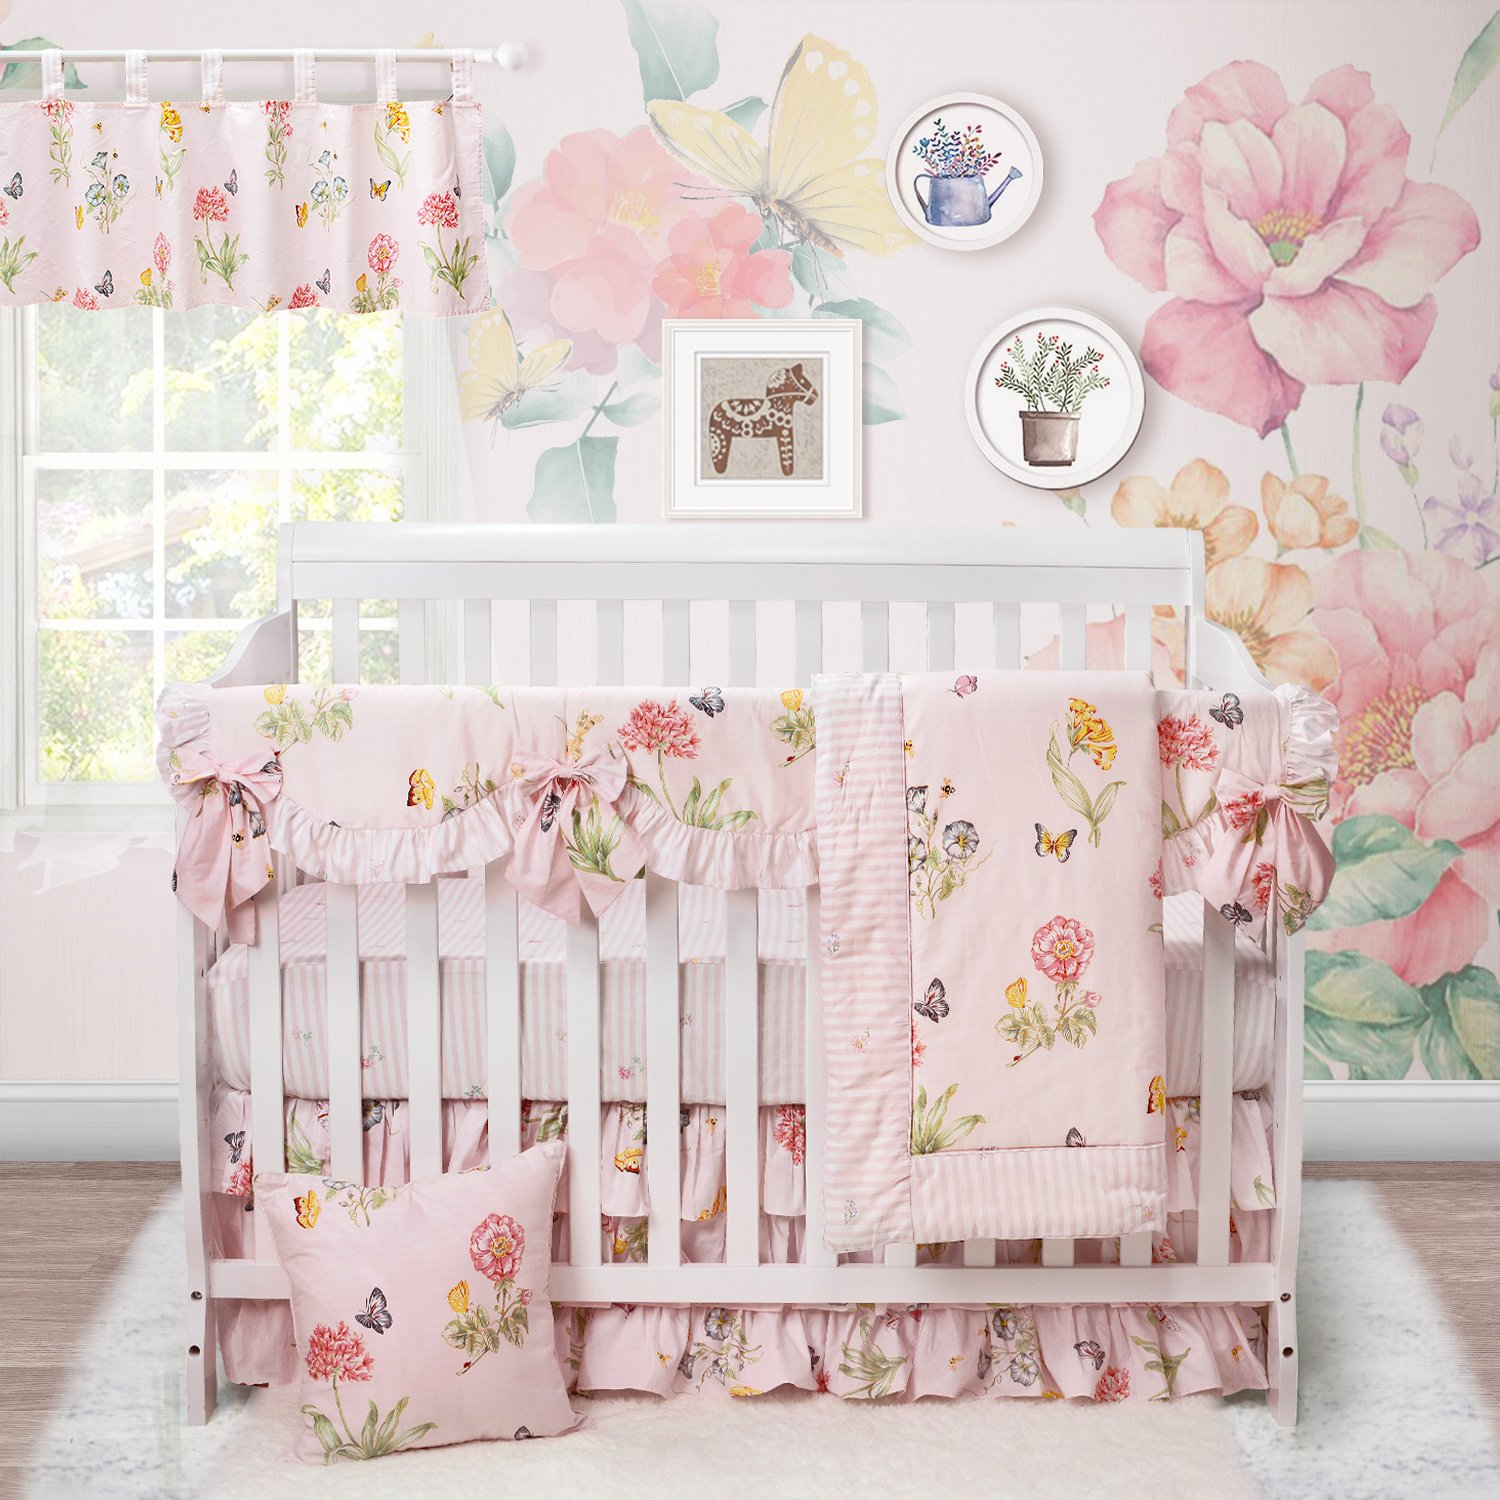 Brandream Butterfly Bedding Girl Crib Bedding Nursery Bedding Shabby Floral Baby bedding Set with Crib Rail Cover,Crib Skirt and 2pcs Crib Sheet,Pink,7pcs